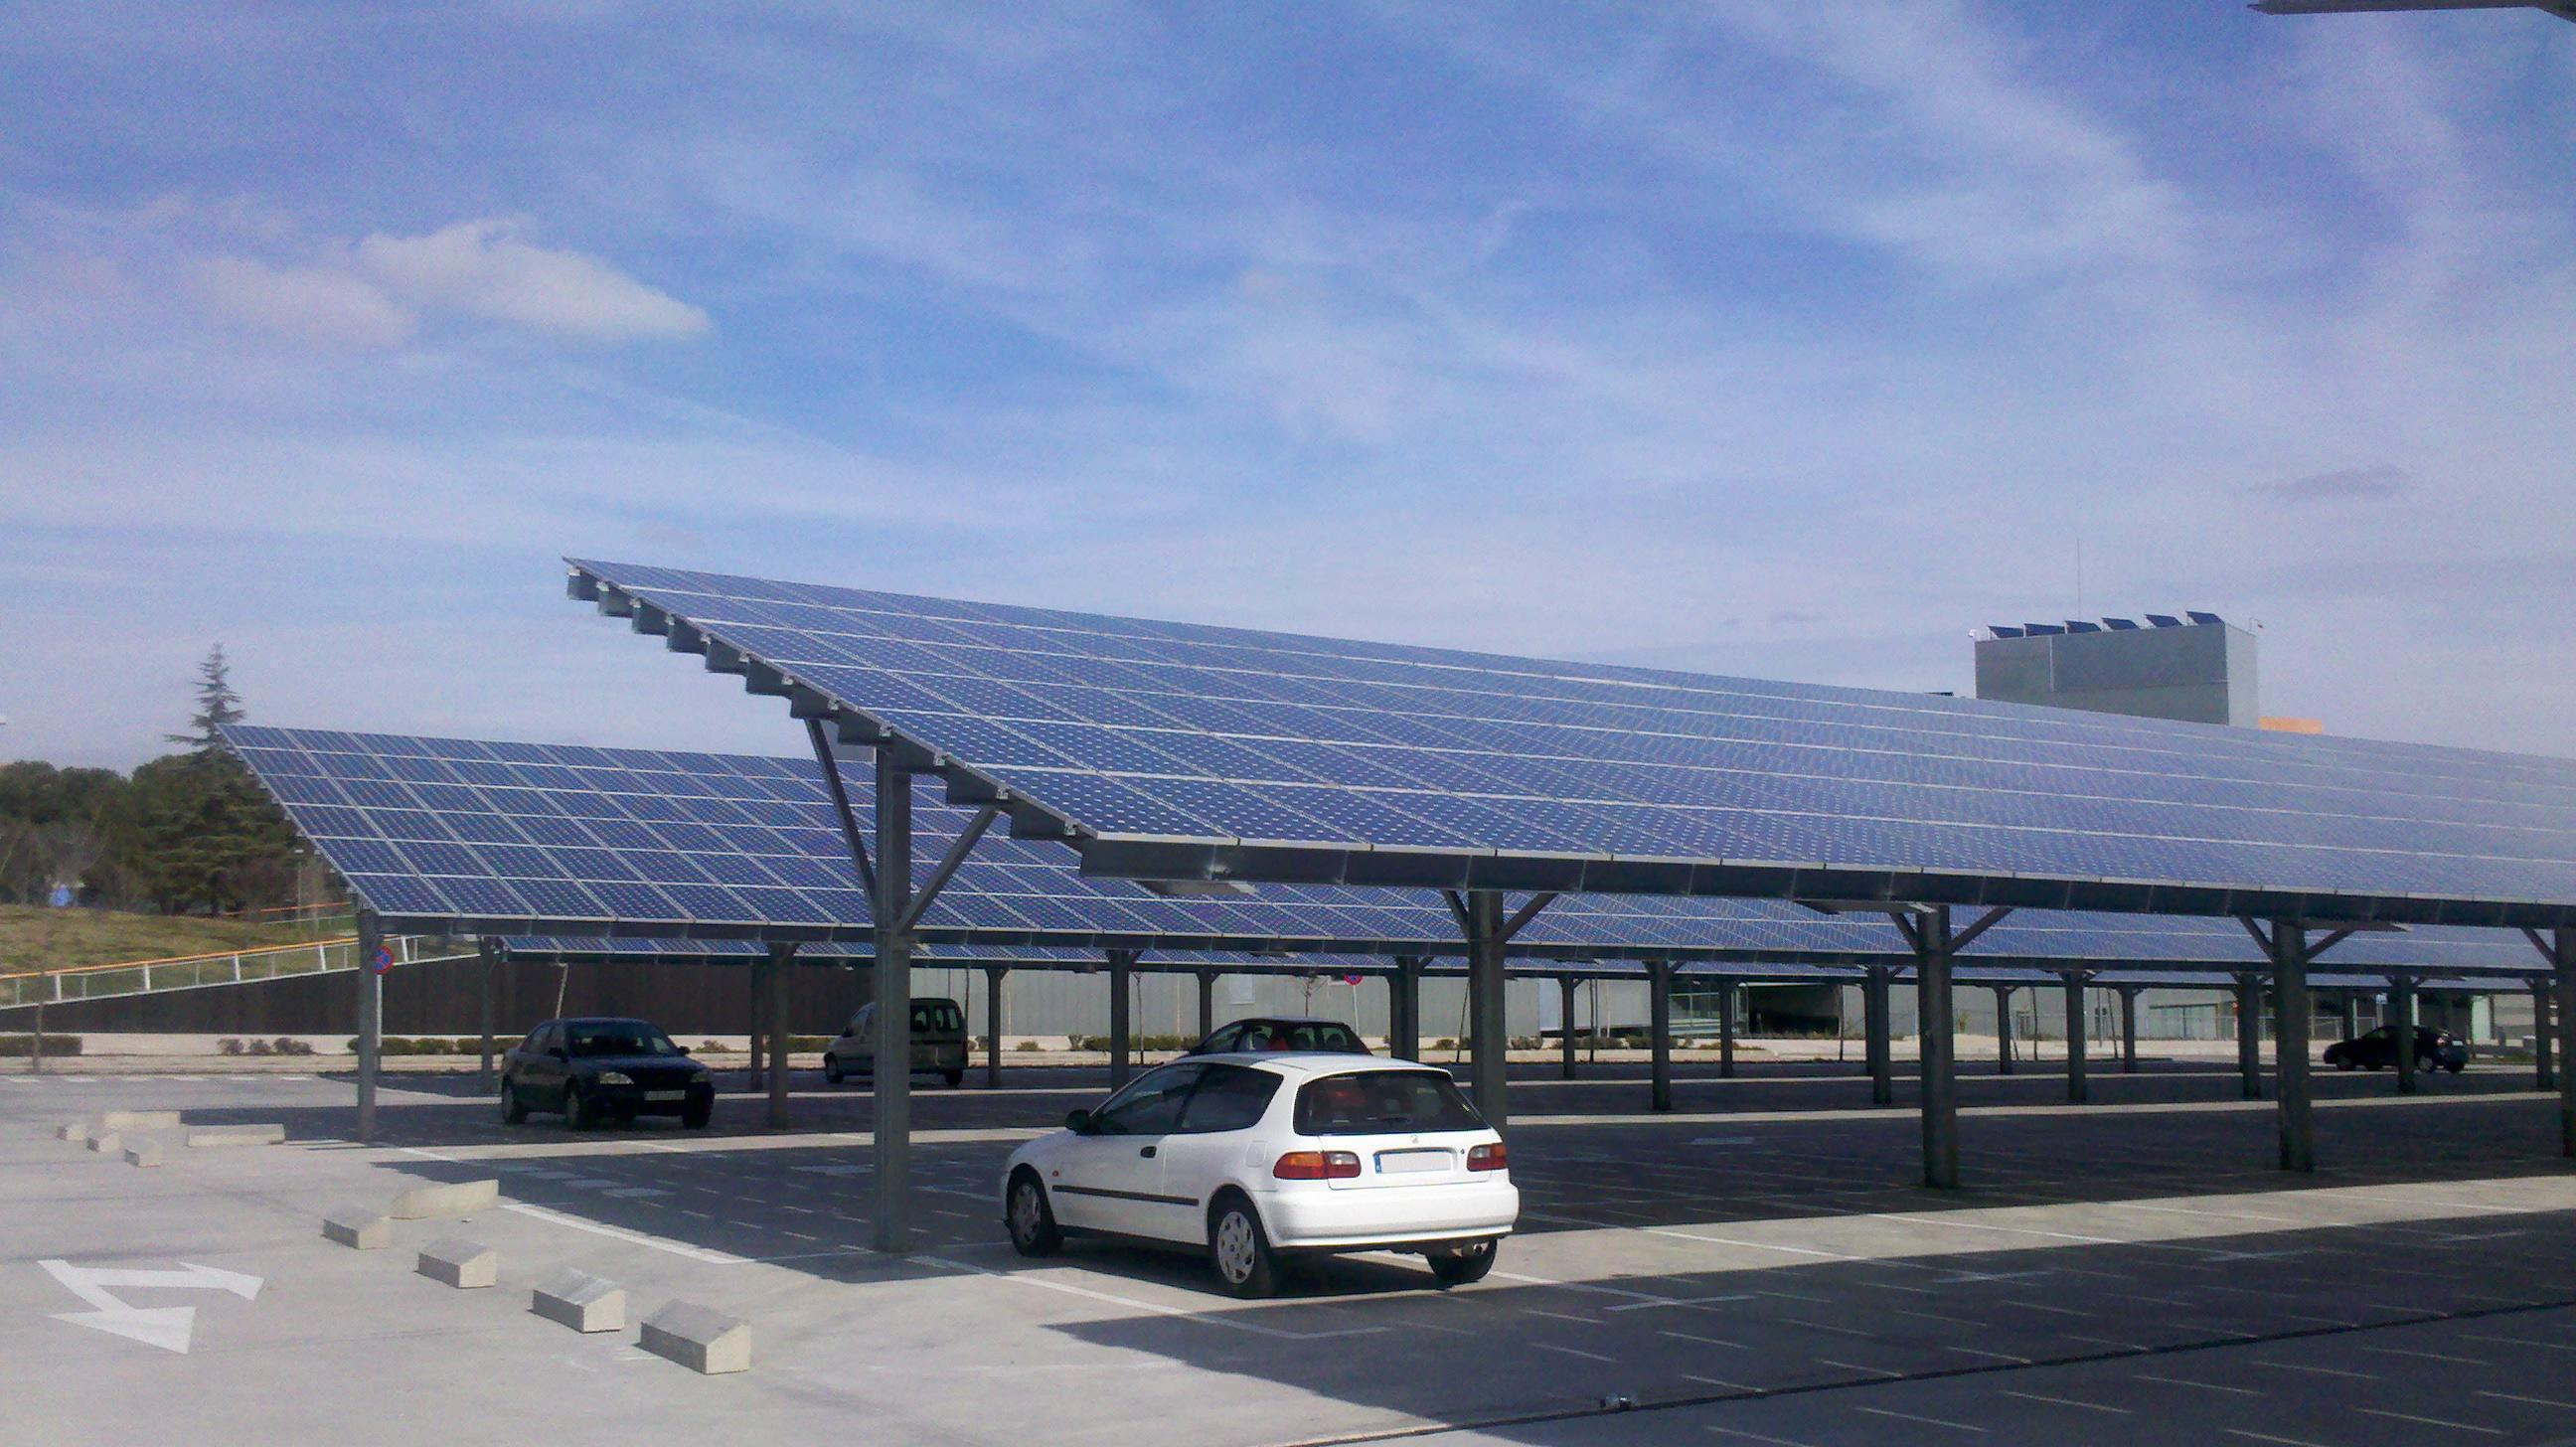 Solor powered parking lots